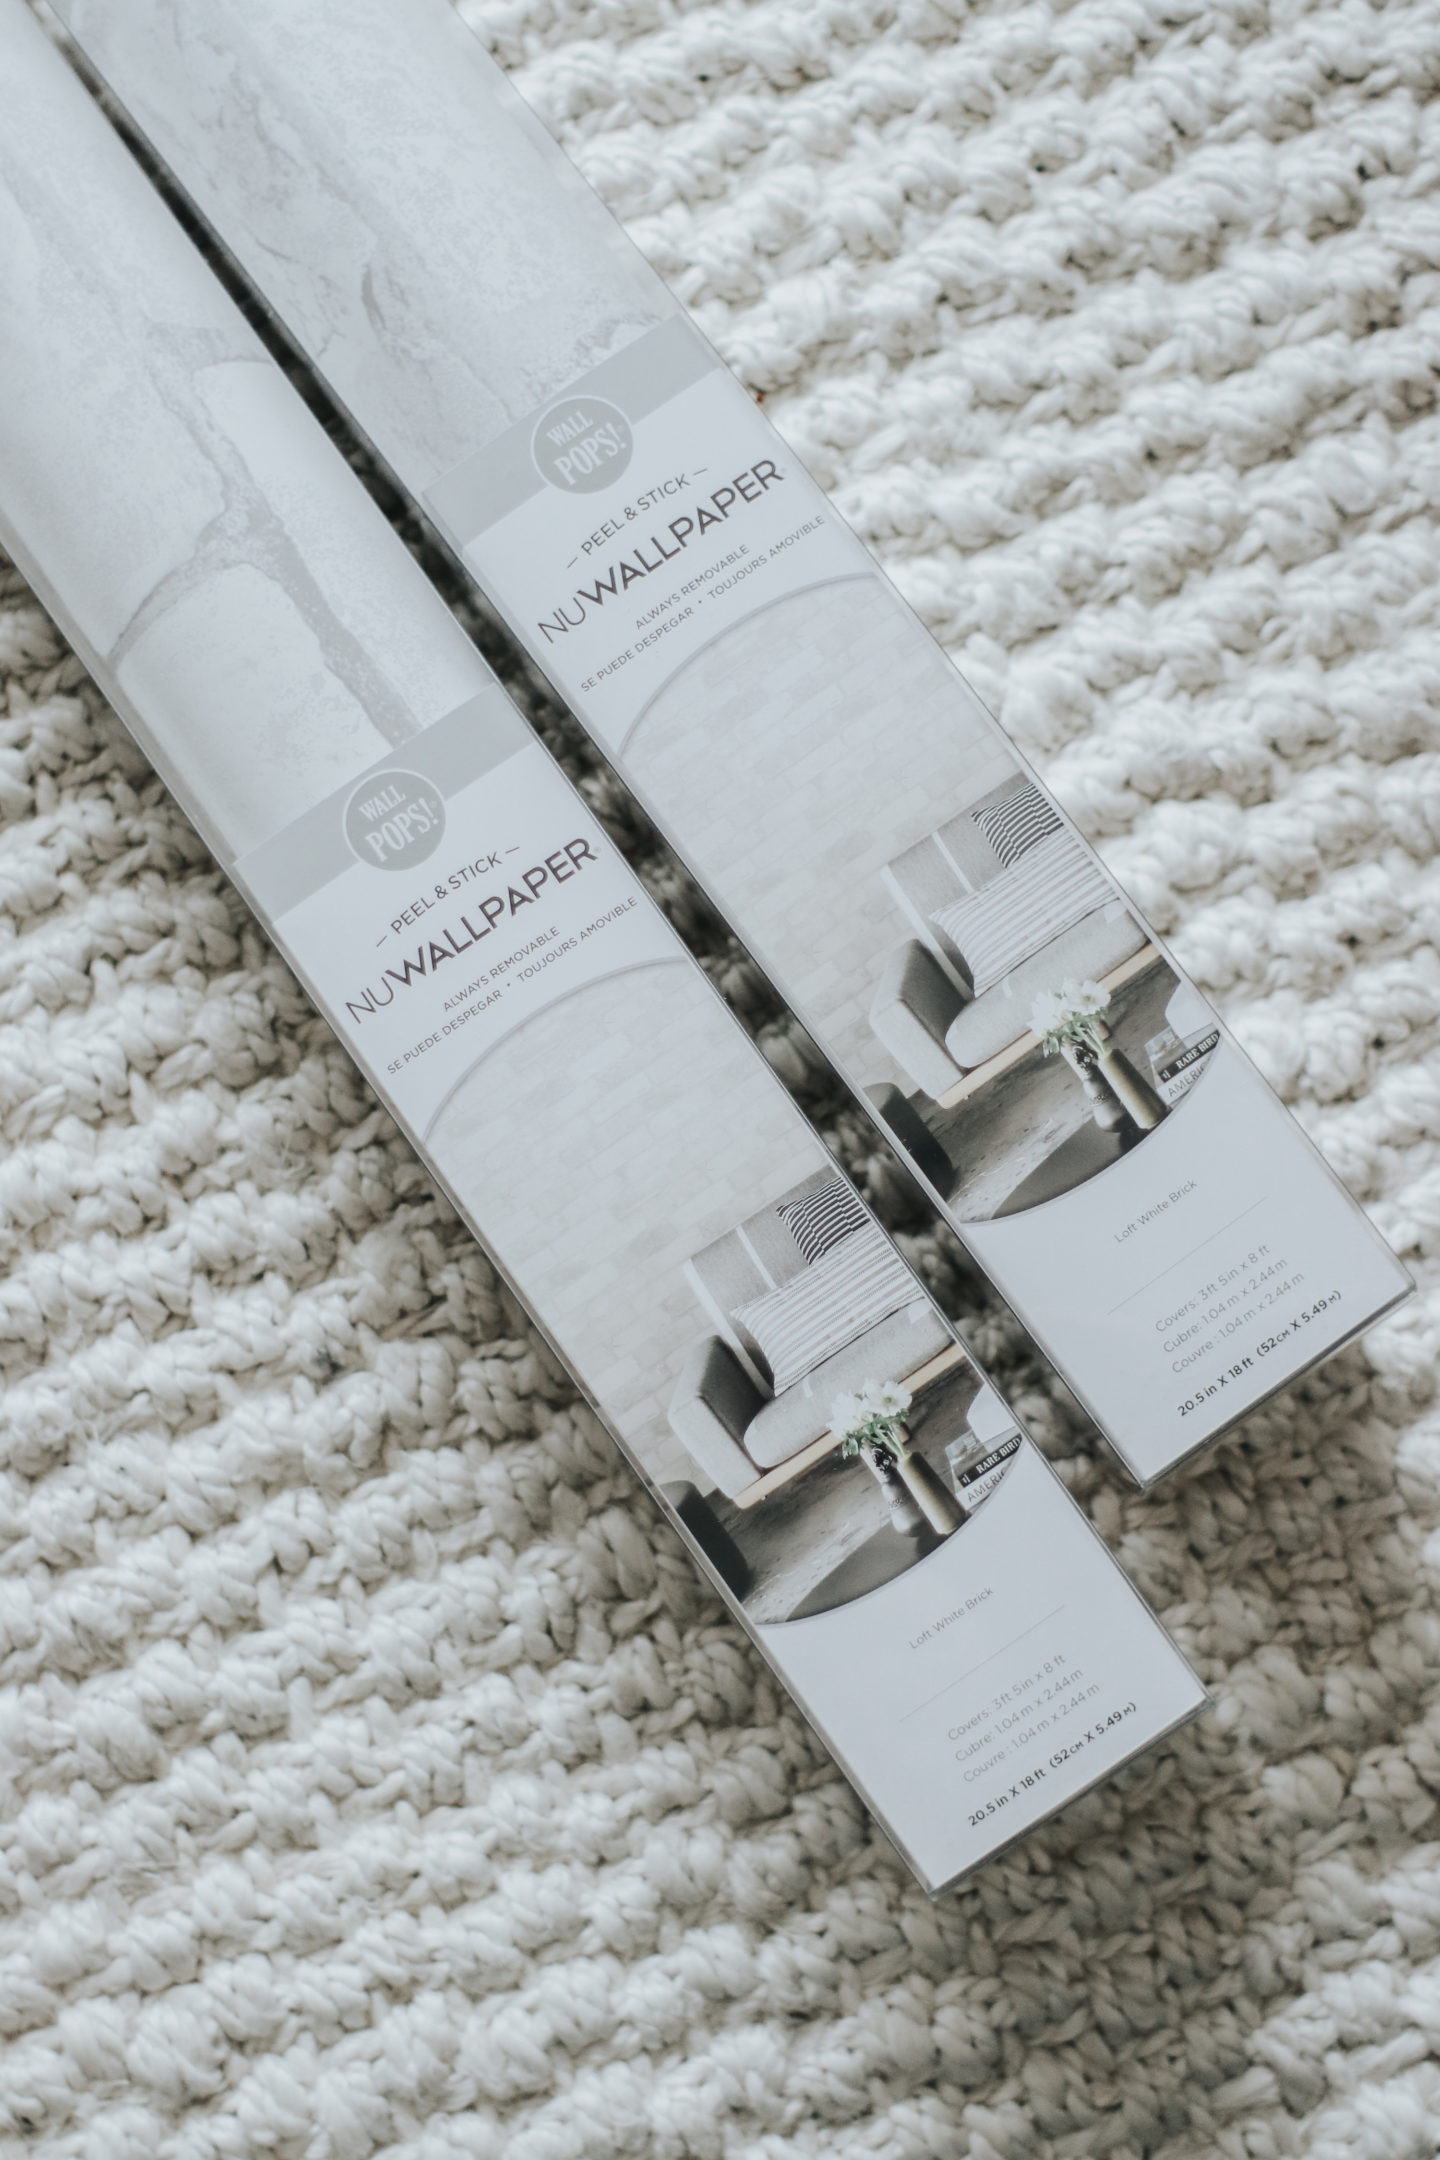 Redecorating With Wallpops! Loft White Brick Peel and Stick NuWallpaper - thecasualfree.com